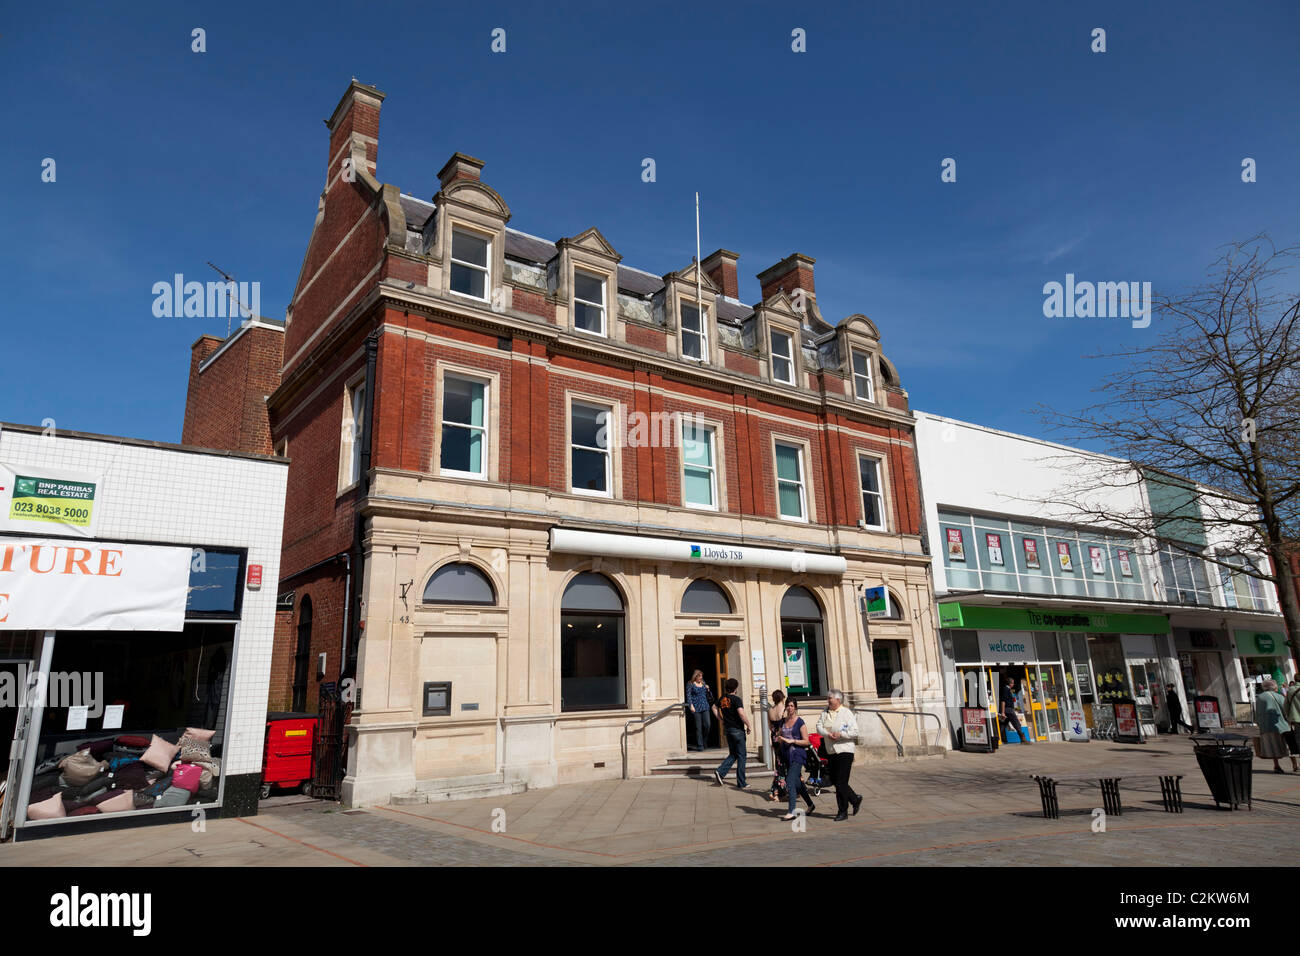 exterior of Lloyds bank in town high street - Stock Image